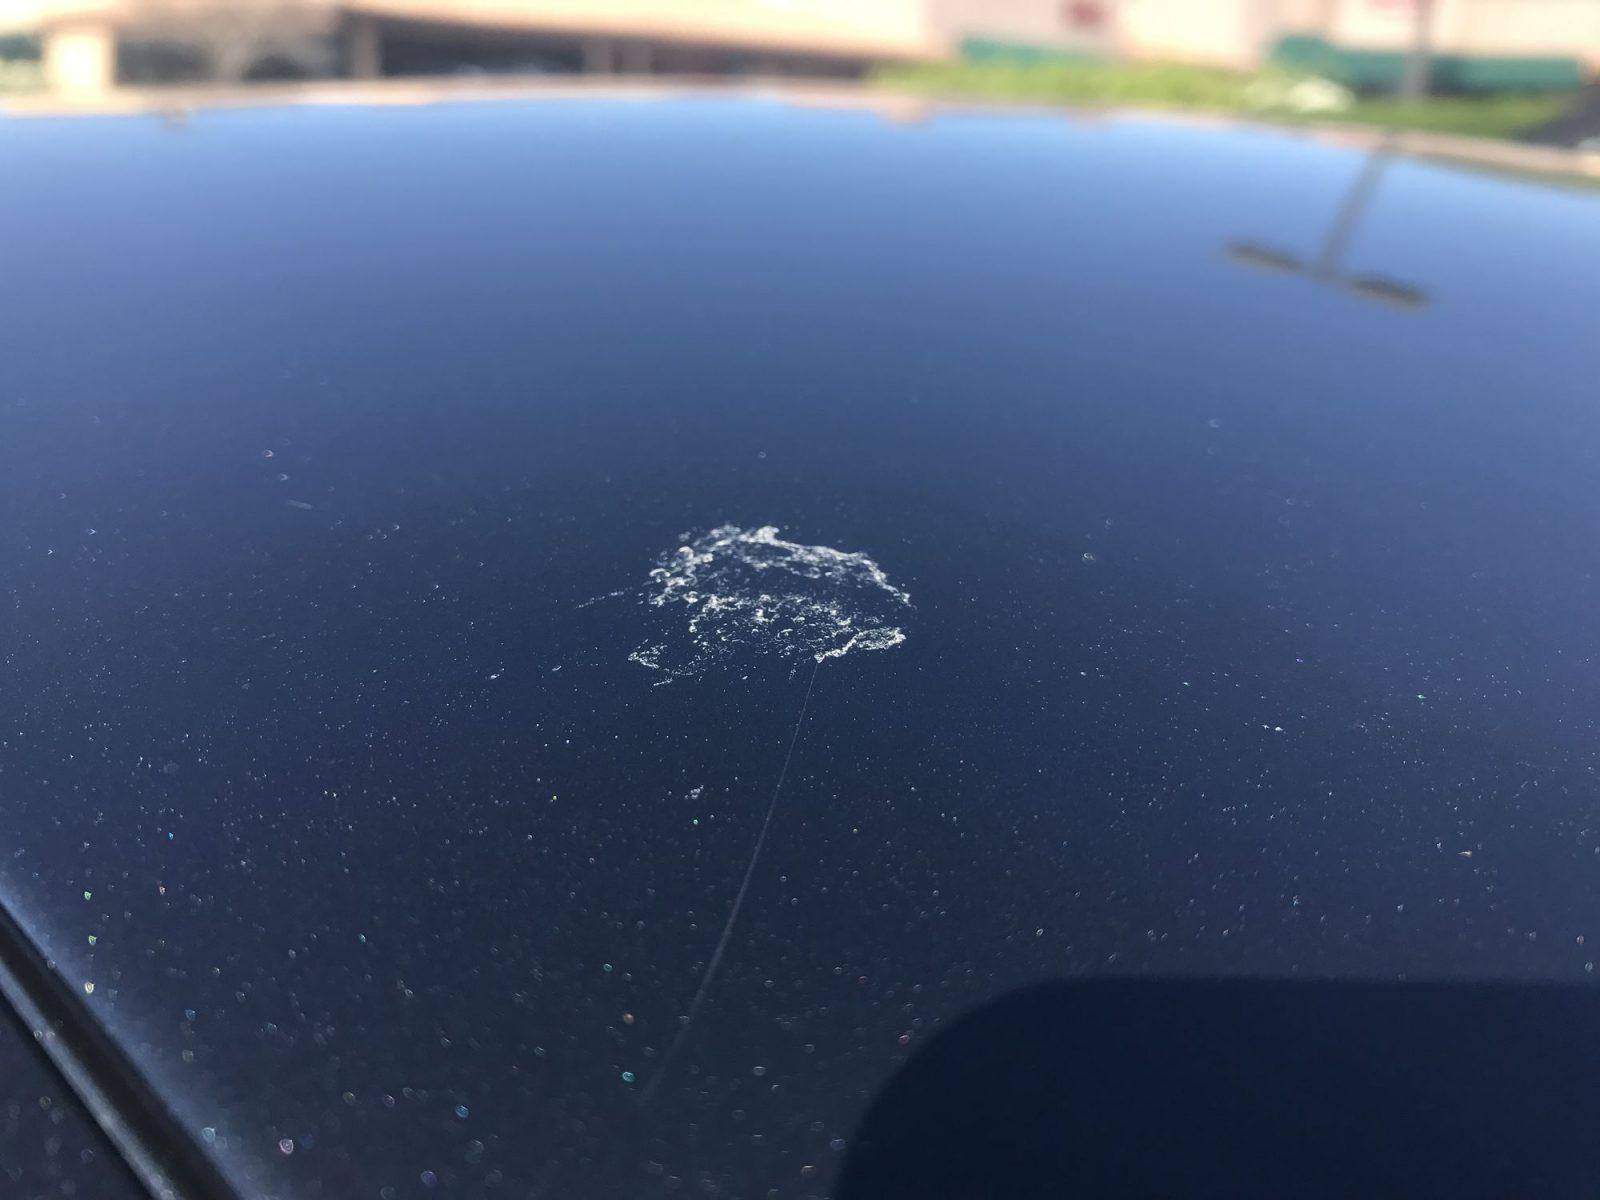 Bird poop on car